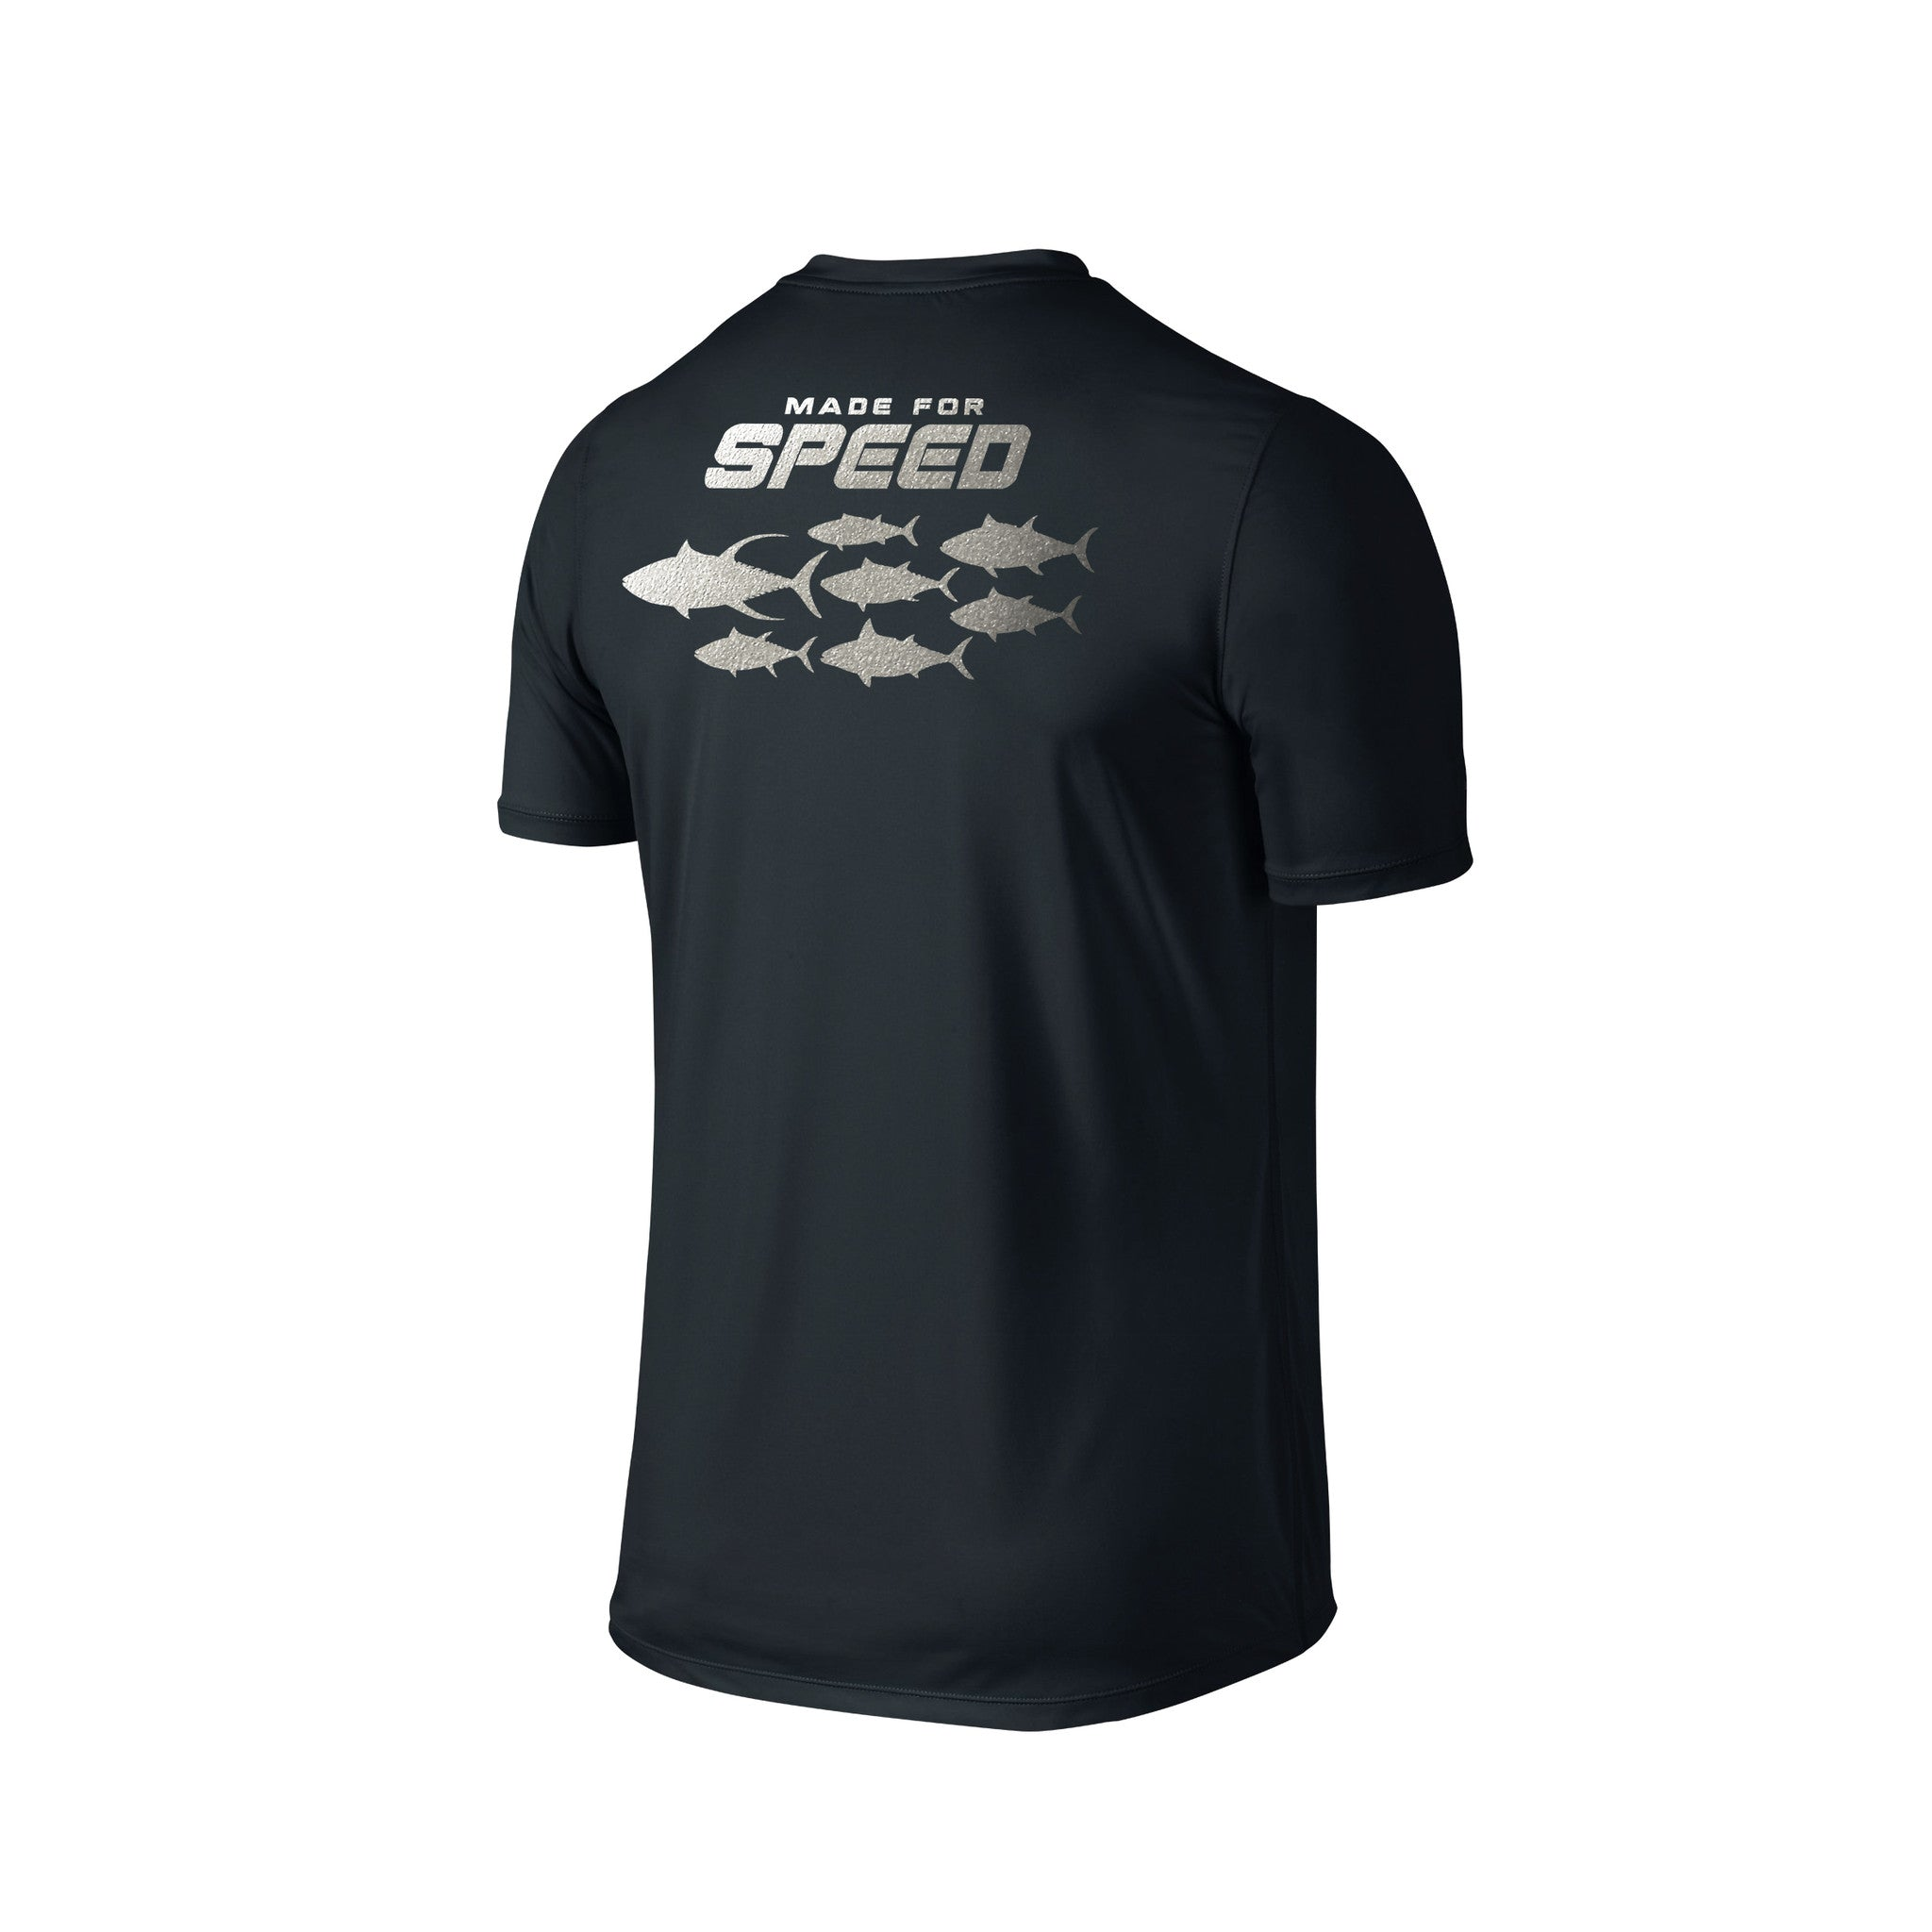 SportyFish Silhouette Series Silver print Black T-shirt: Made for Speed back view